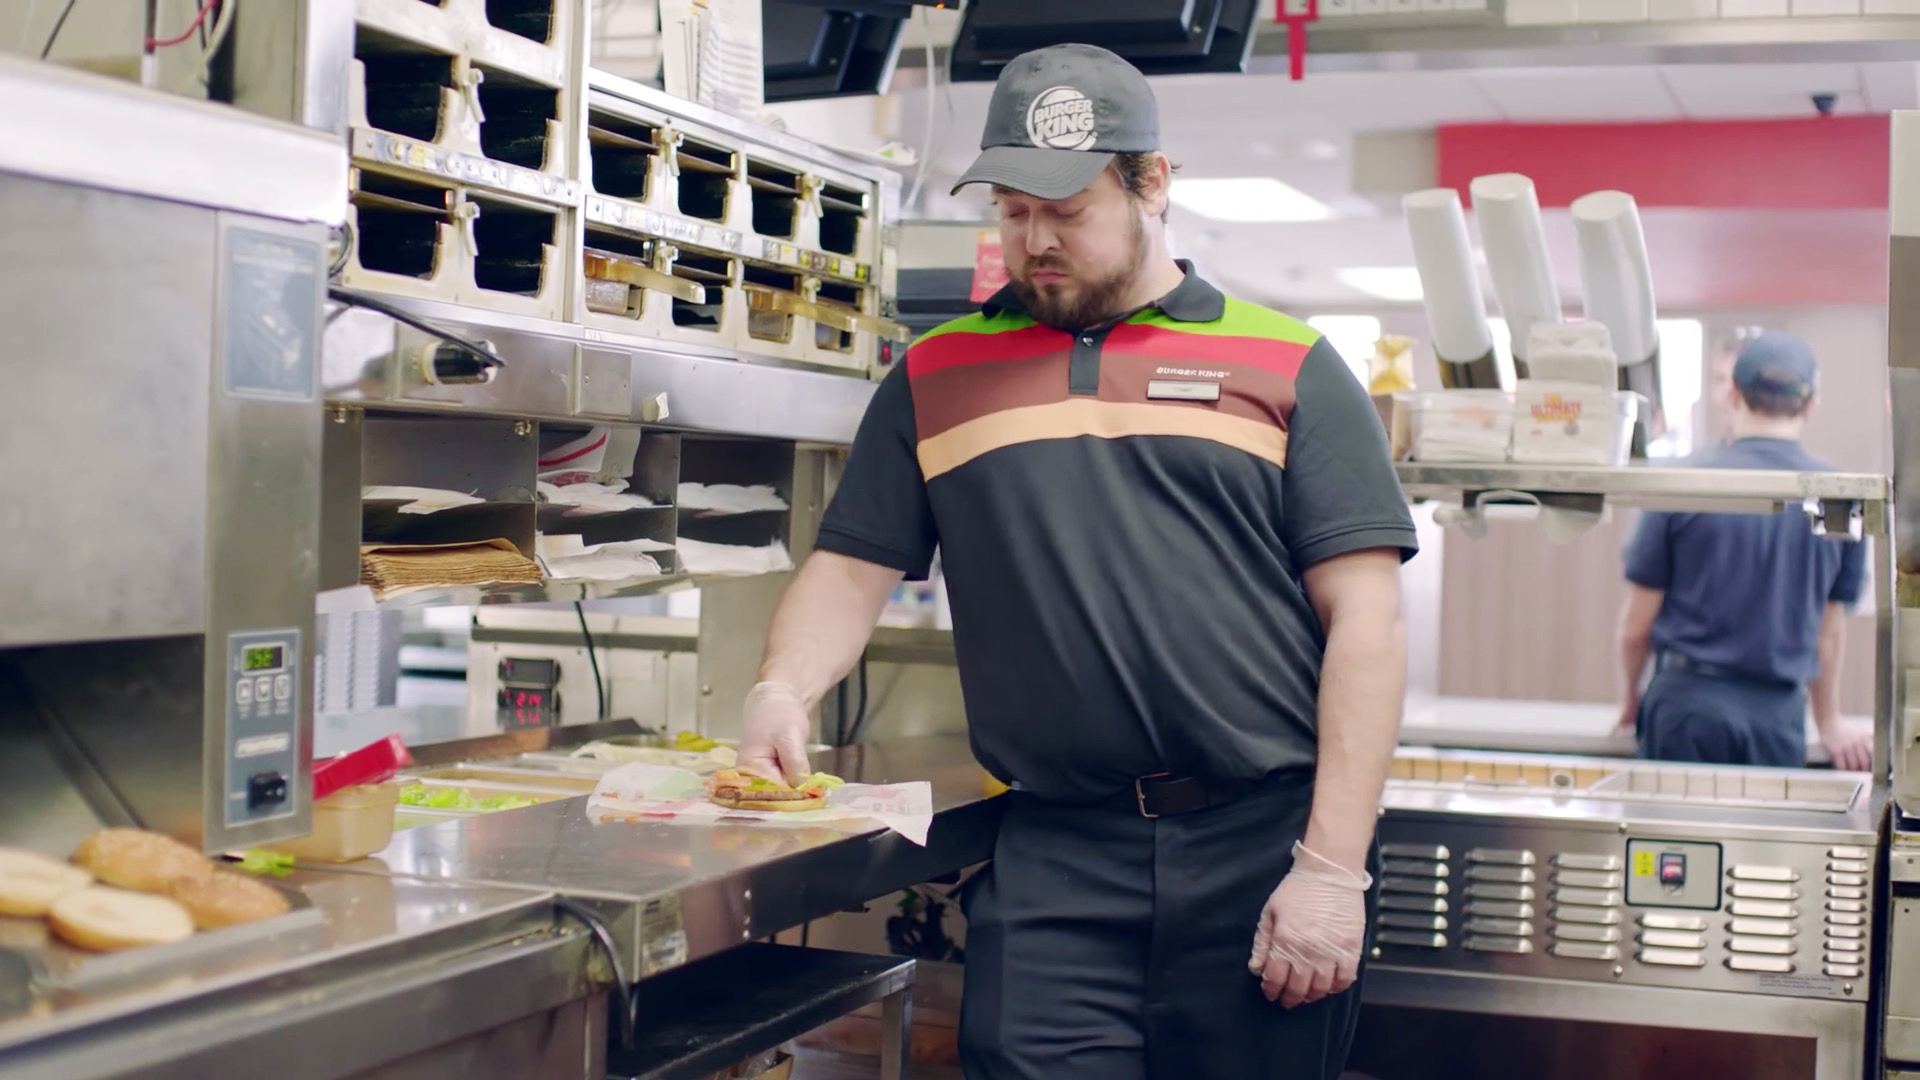 Burger King's New Anti-Bullying PSA Sends a Powerful Message About Speaking Up